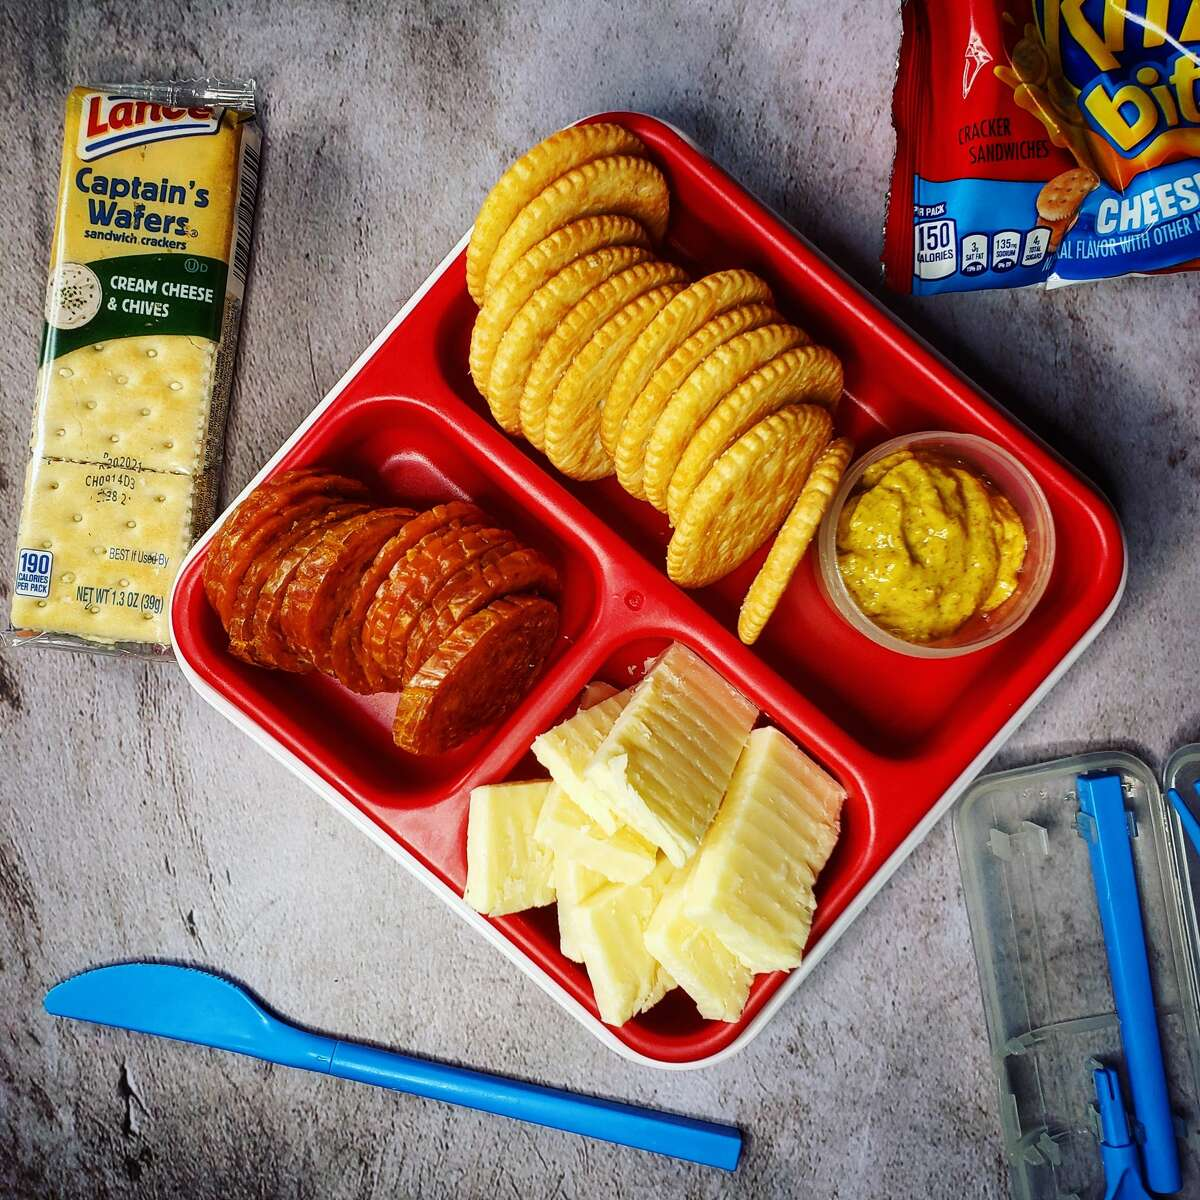 There's nothing wrong with a plate of cheese and crackers. No charcuterie experience necessary.